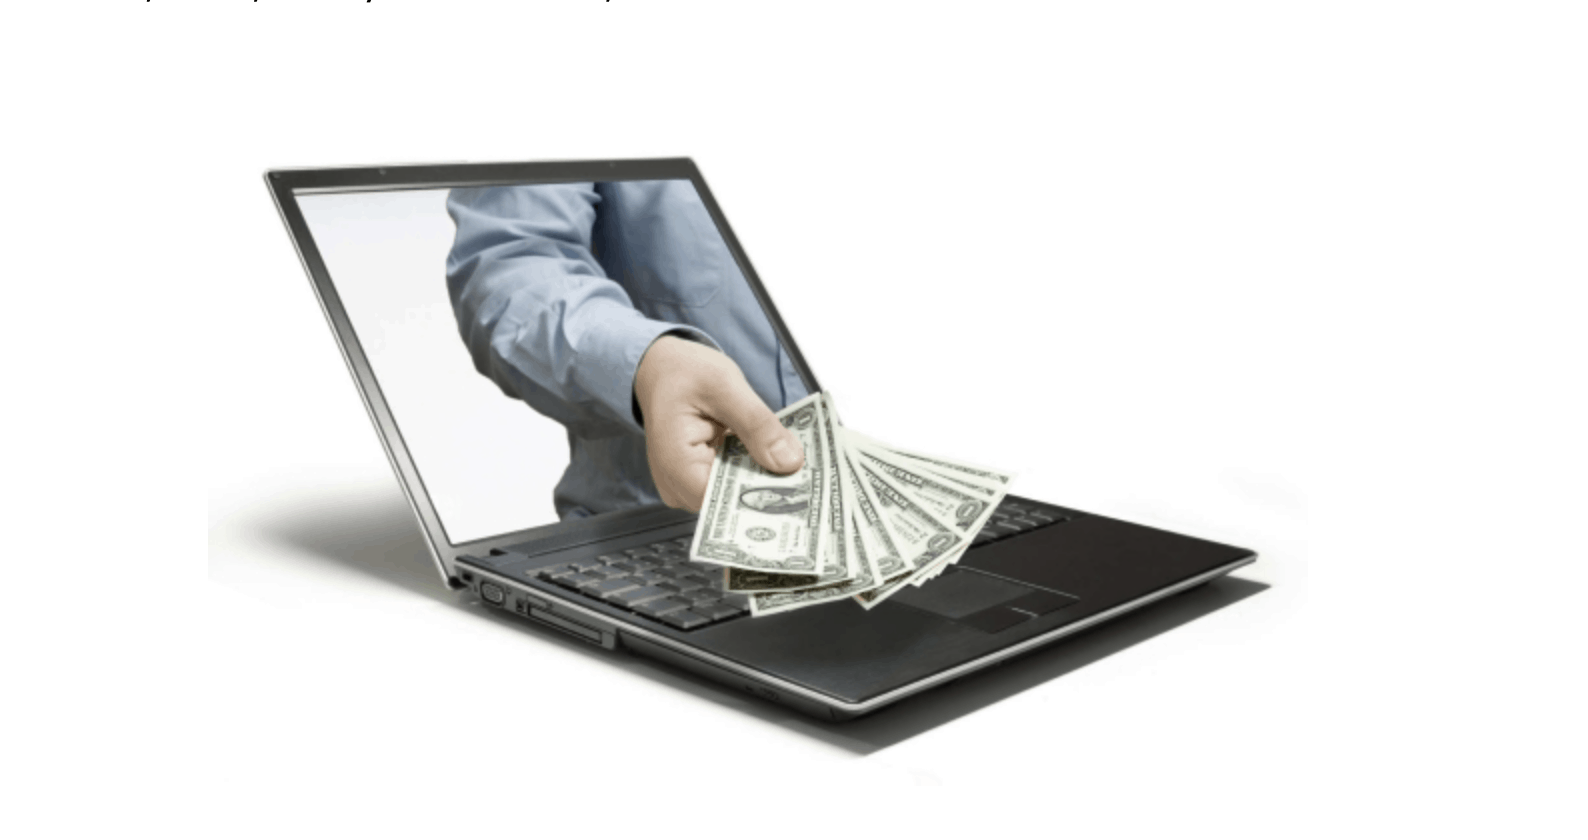 How to Choose One of the Best Places That Buy Used Laptops